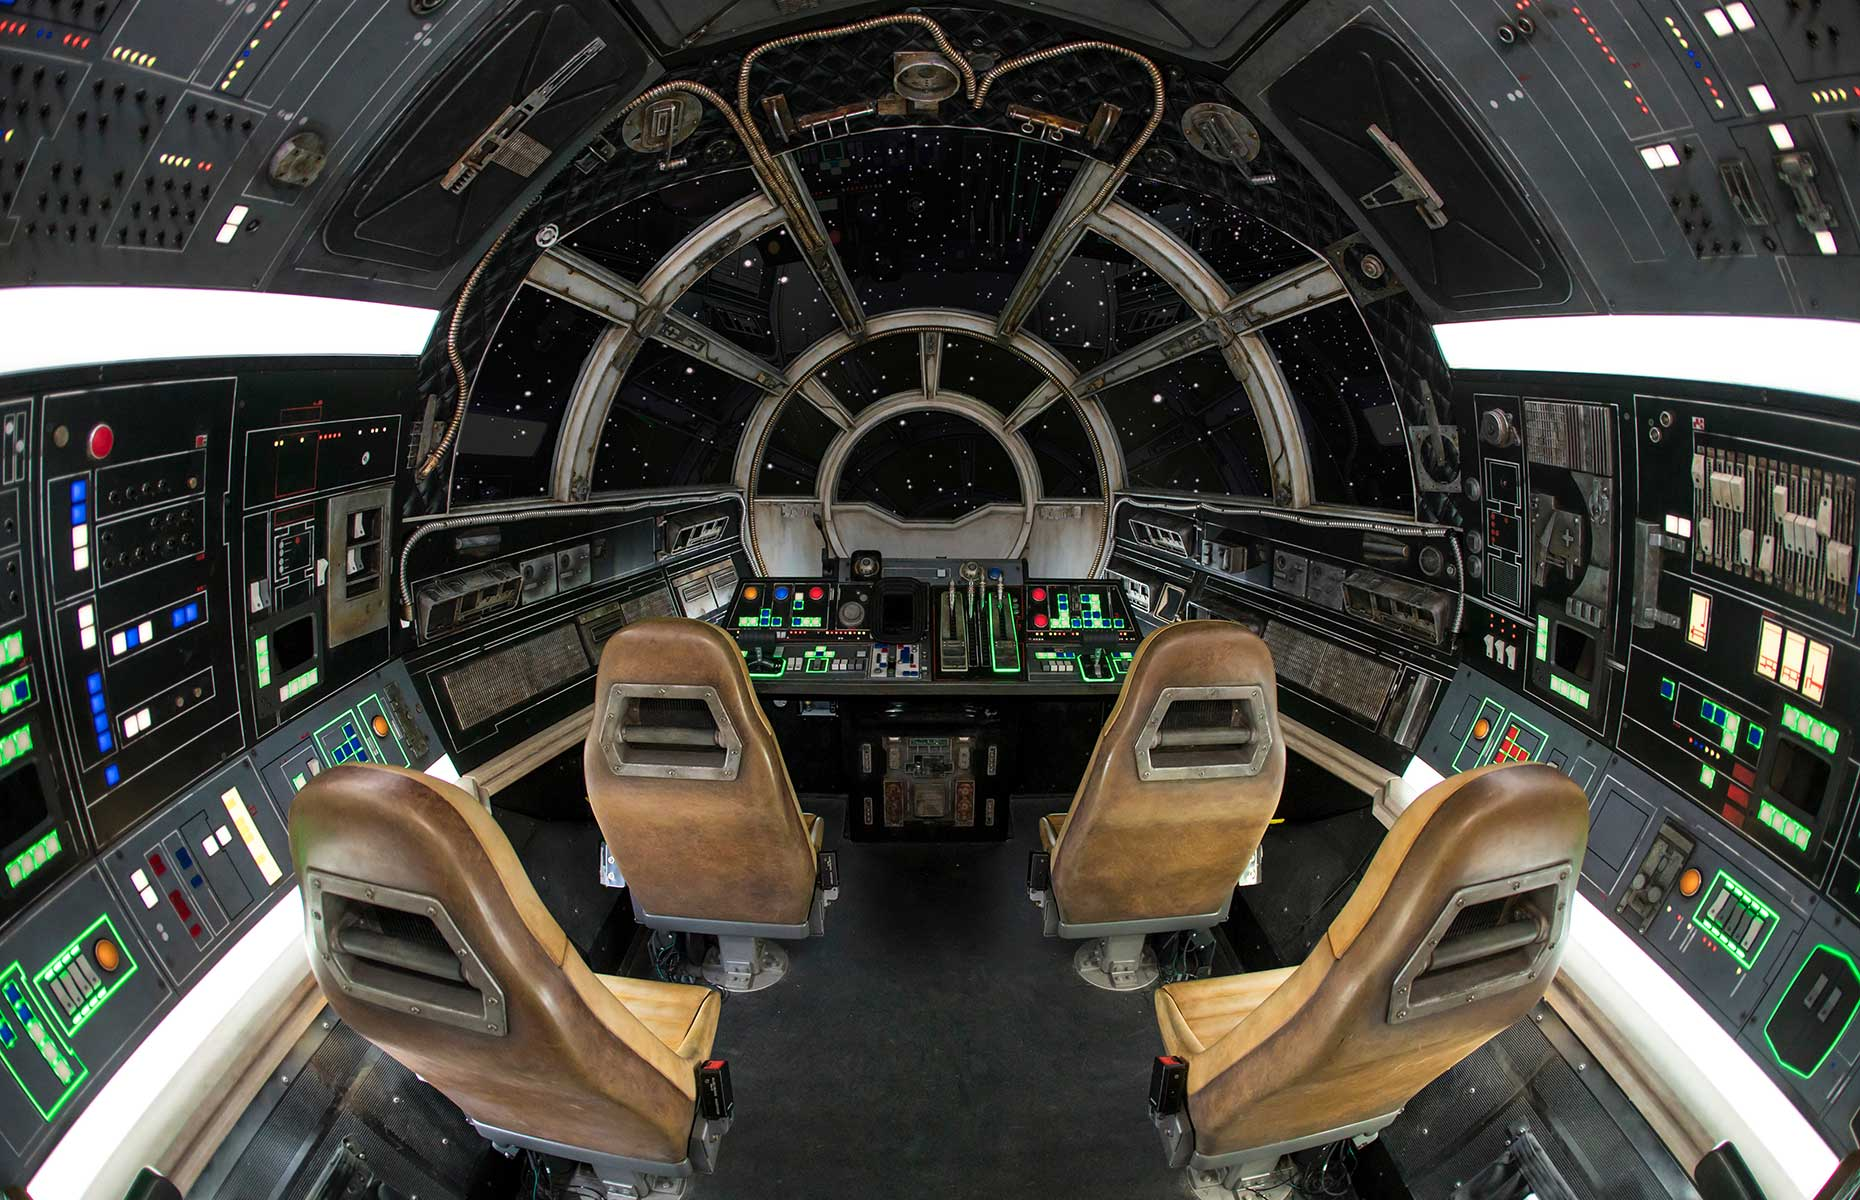 Millennium Falcon, Smuggler's Run ride at Disneyland, Anaheim, California